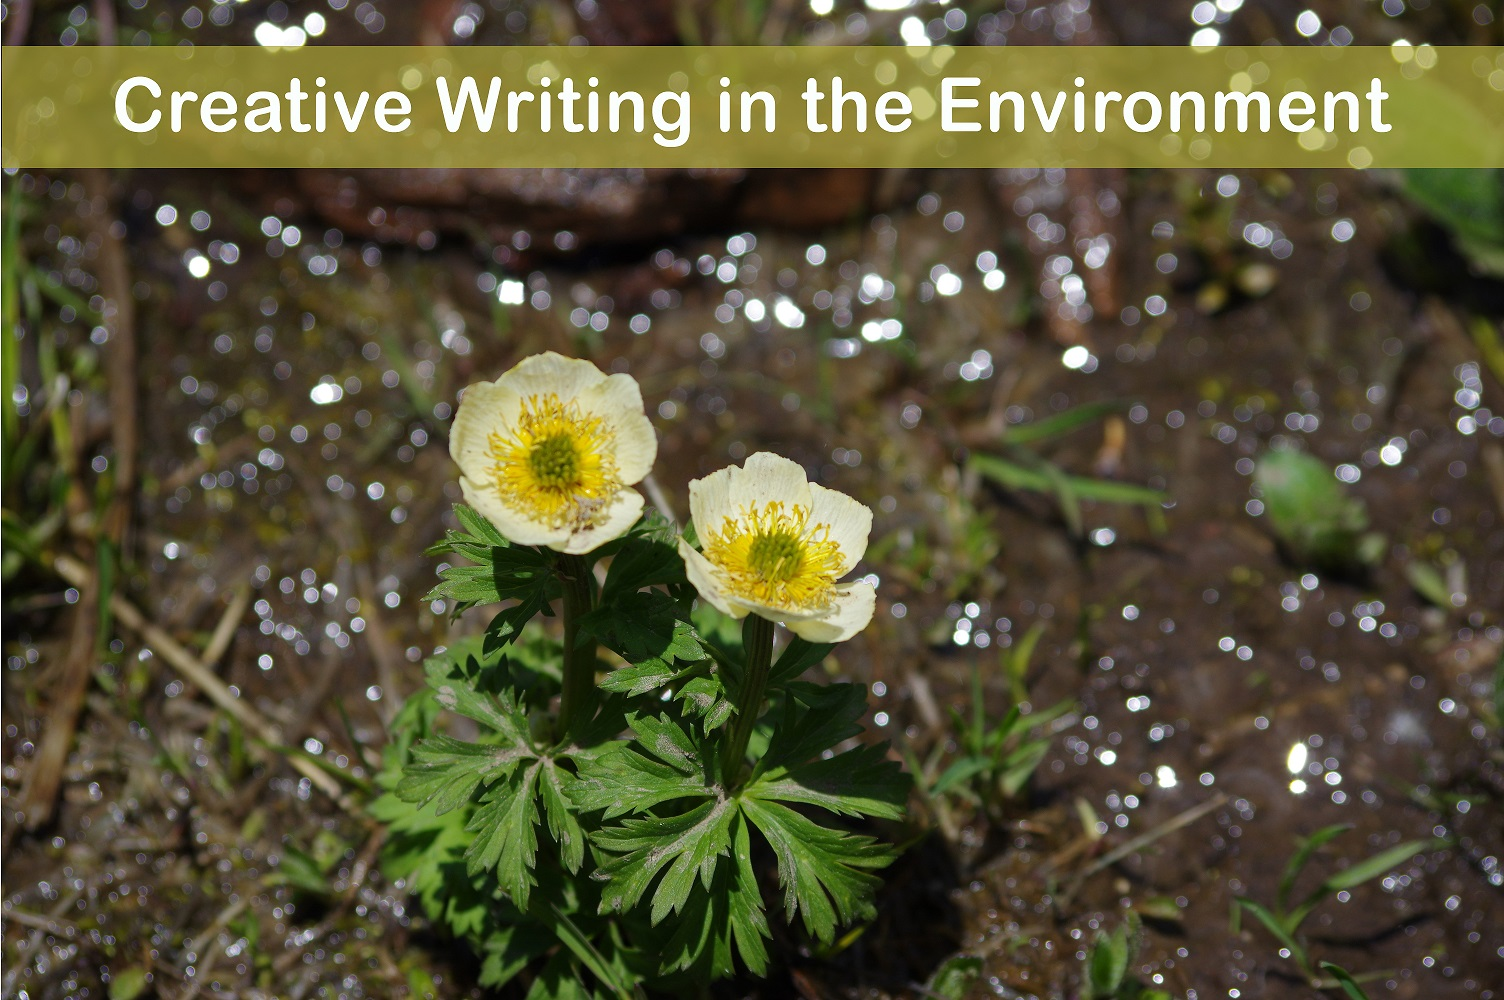 """creative writing in the environment"" course, image features yellow flower"